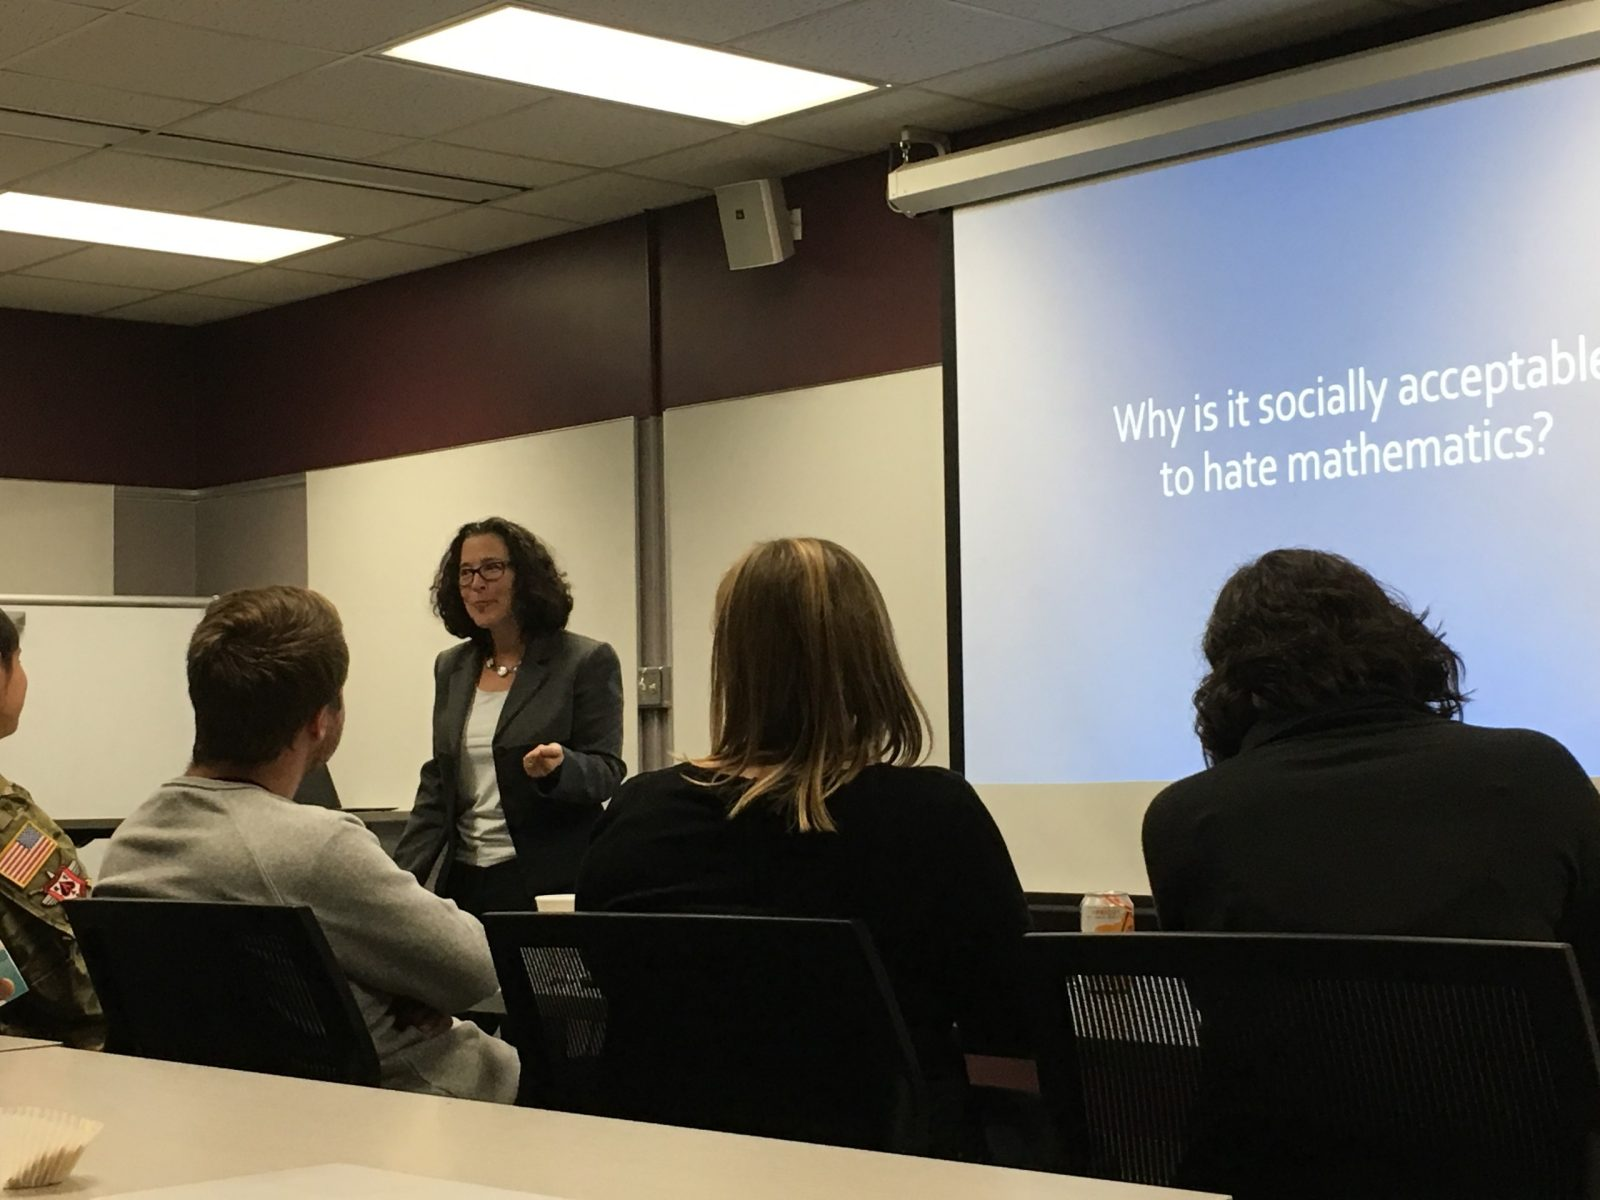 More photos from Dr. Levys' talk on October 22nd